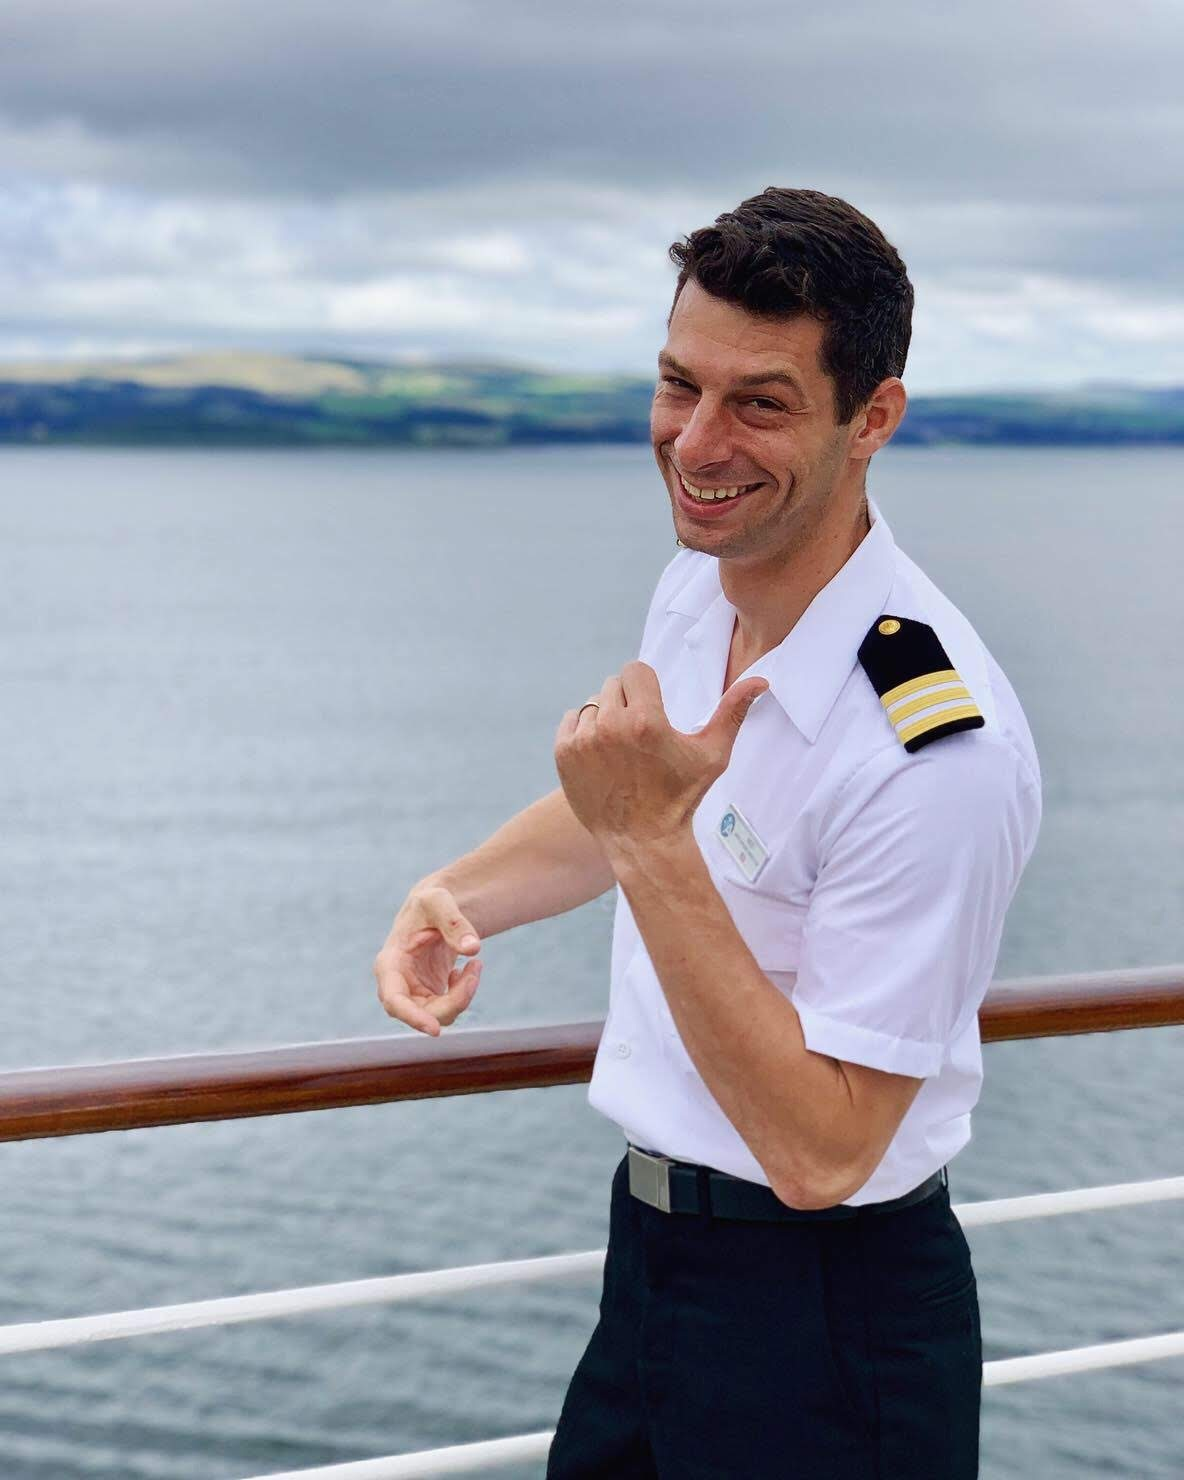 Is that Sharpless? No… just chorister Ned Hanlon in uniform as Assistant Cruise Director of the Azamara Journey.